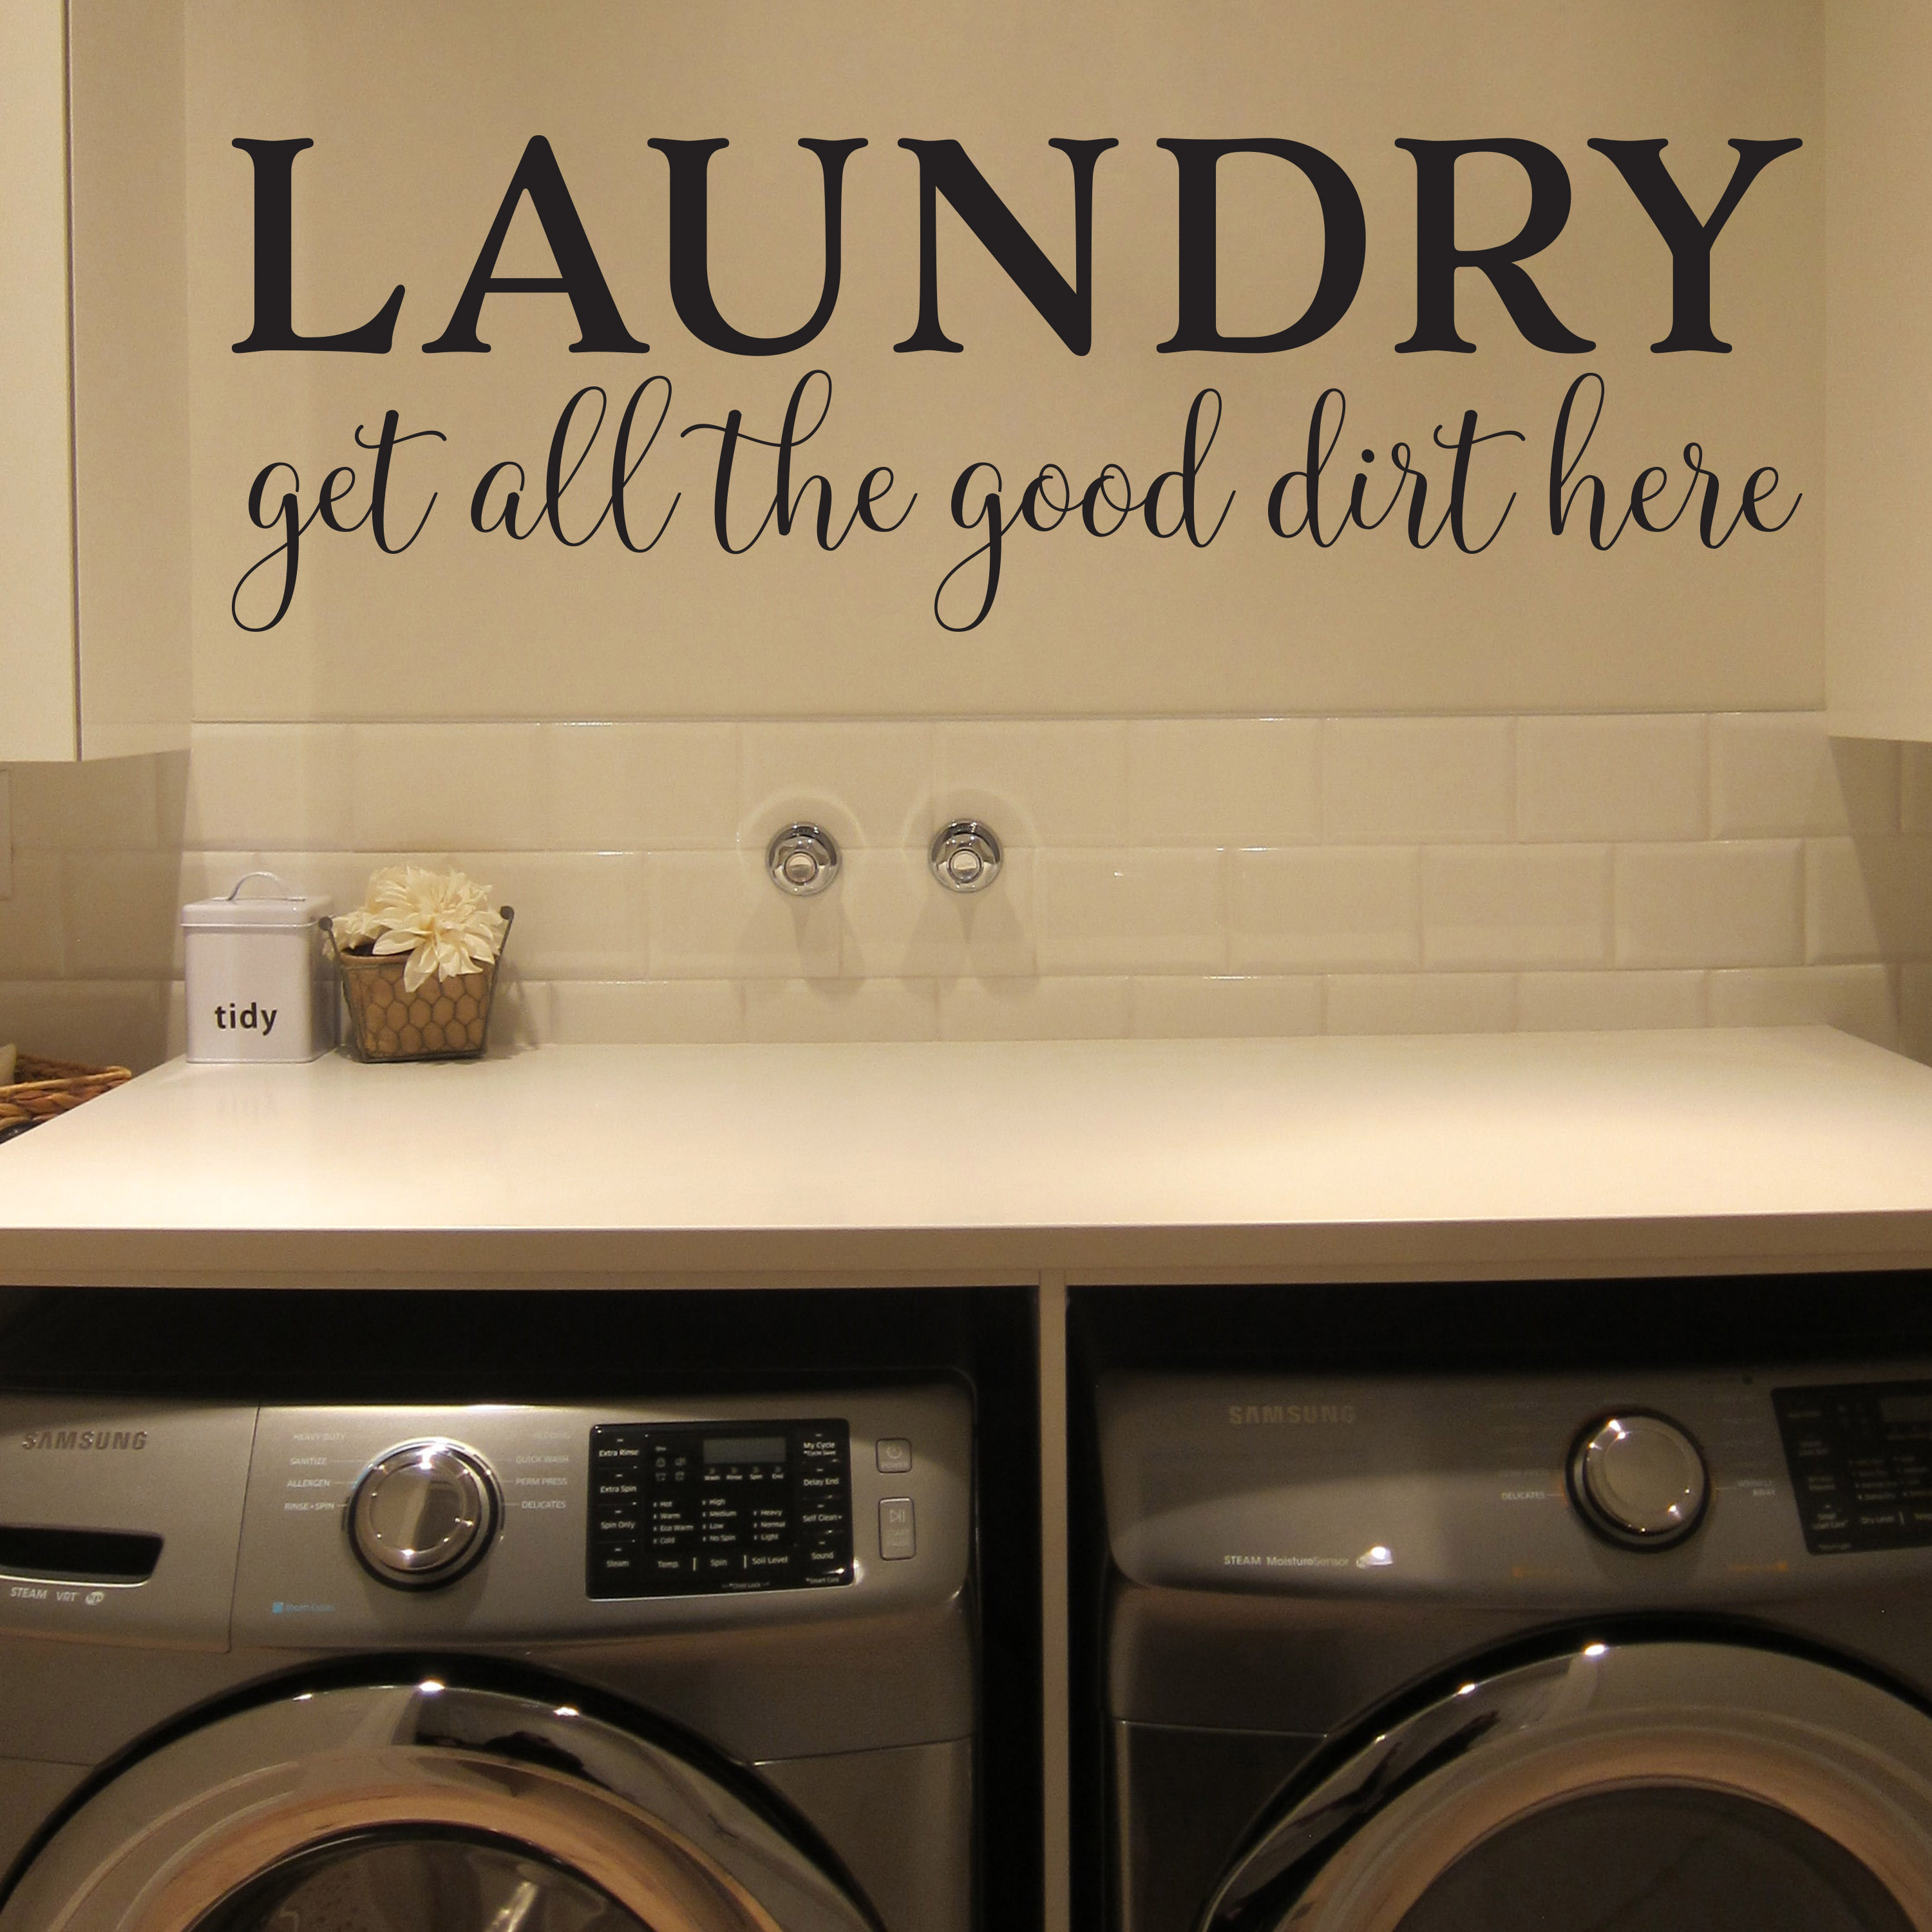 Removable Wall Decals Laundry Room Room Get All The Good Dirt Here Vinyl Wall Decal